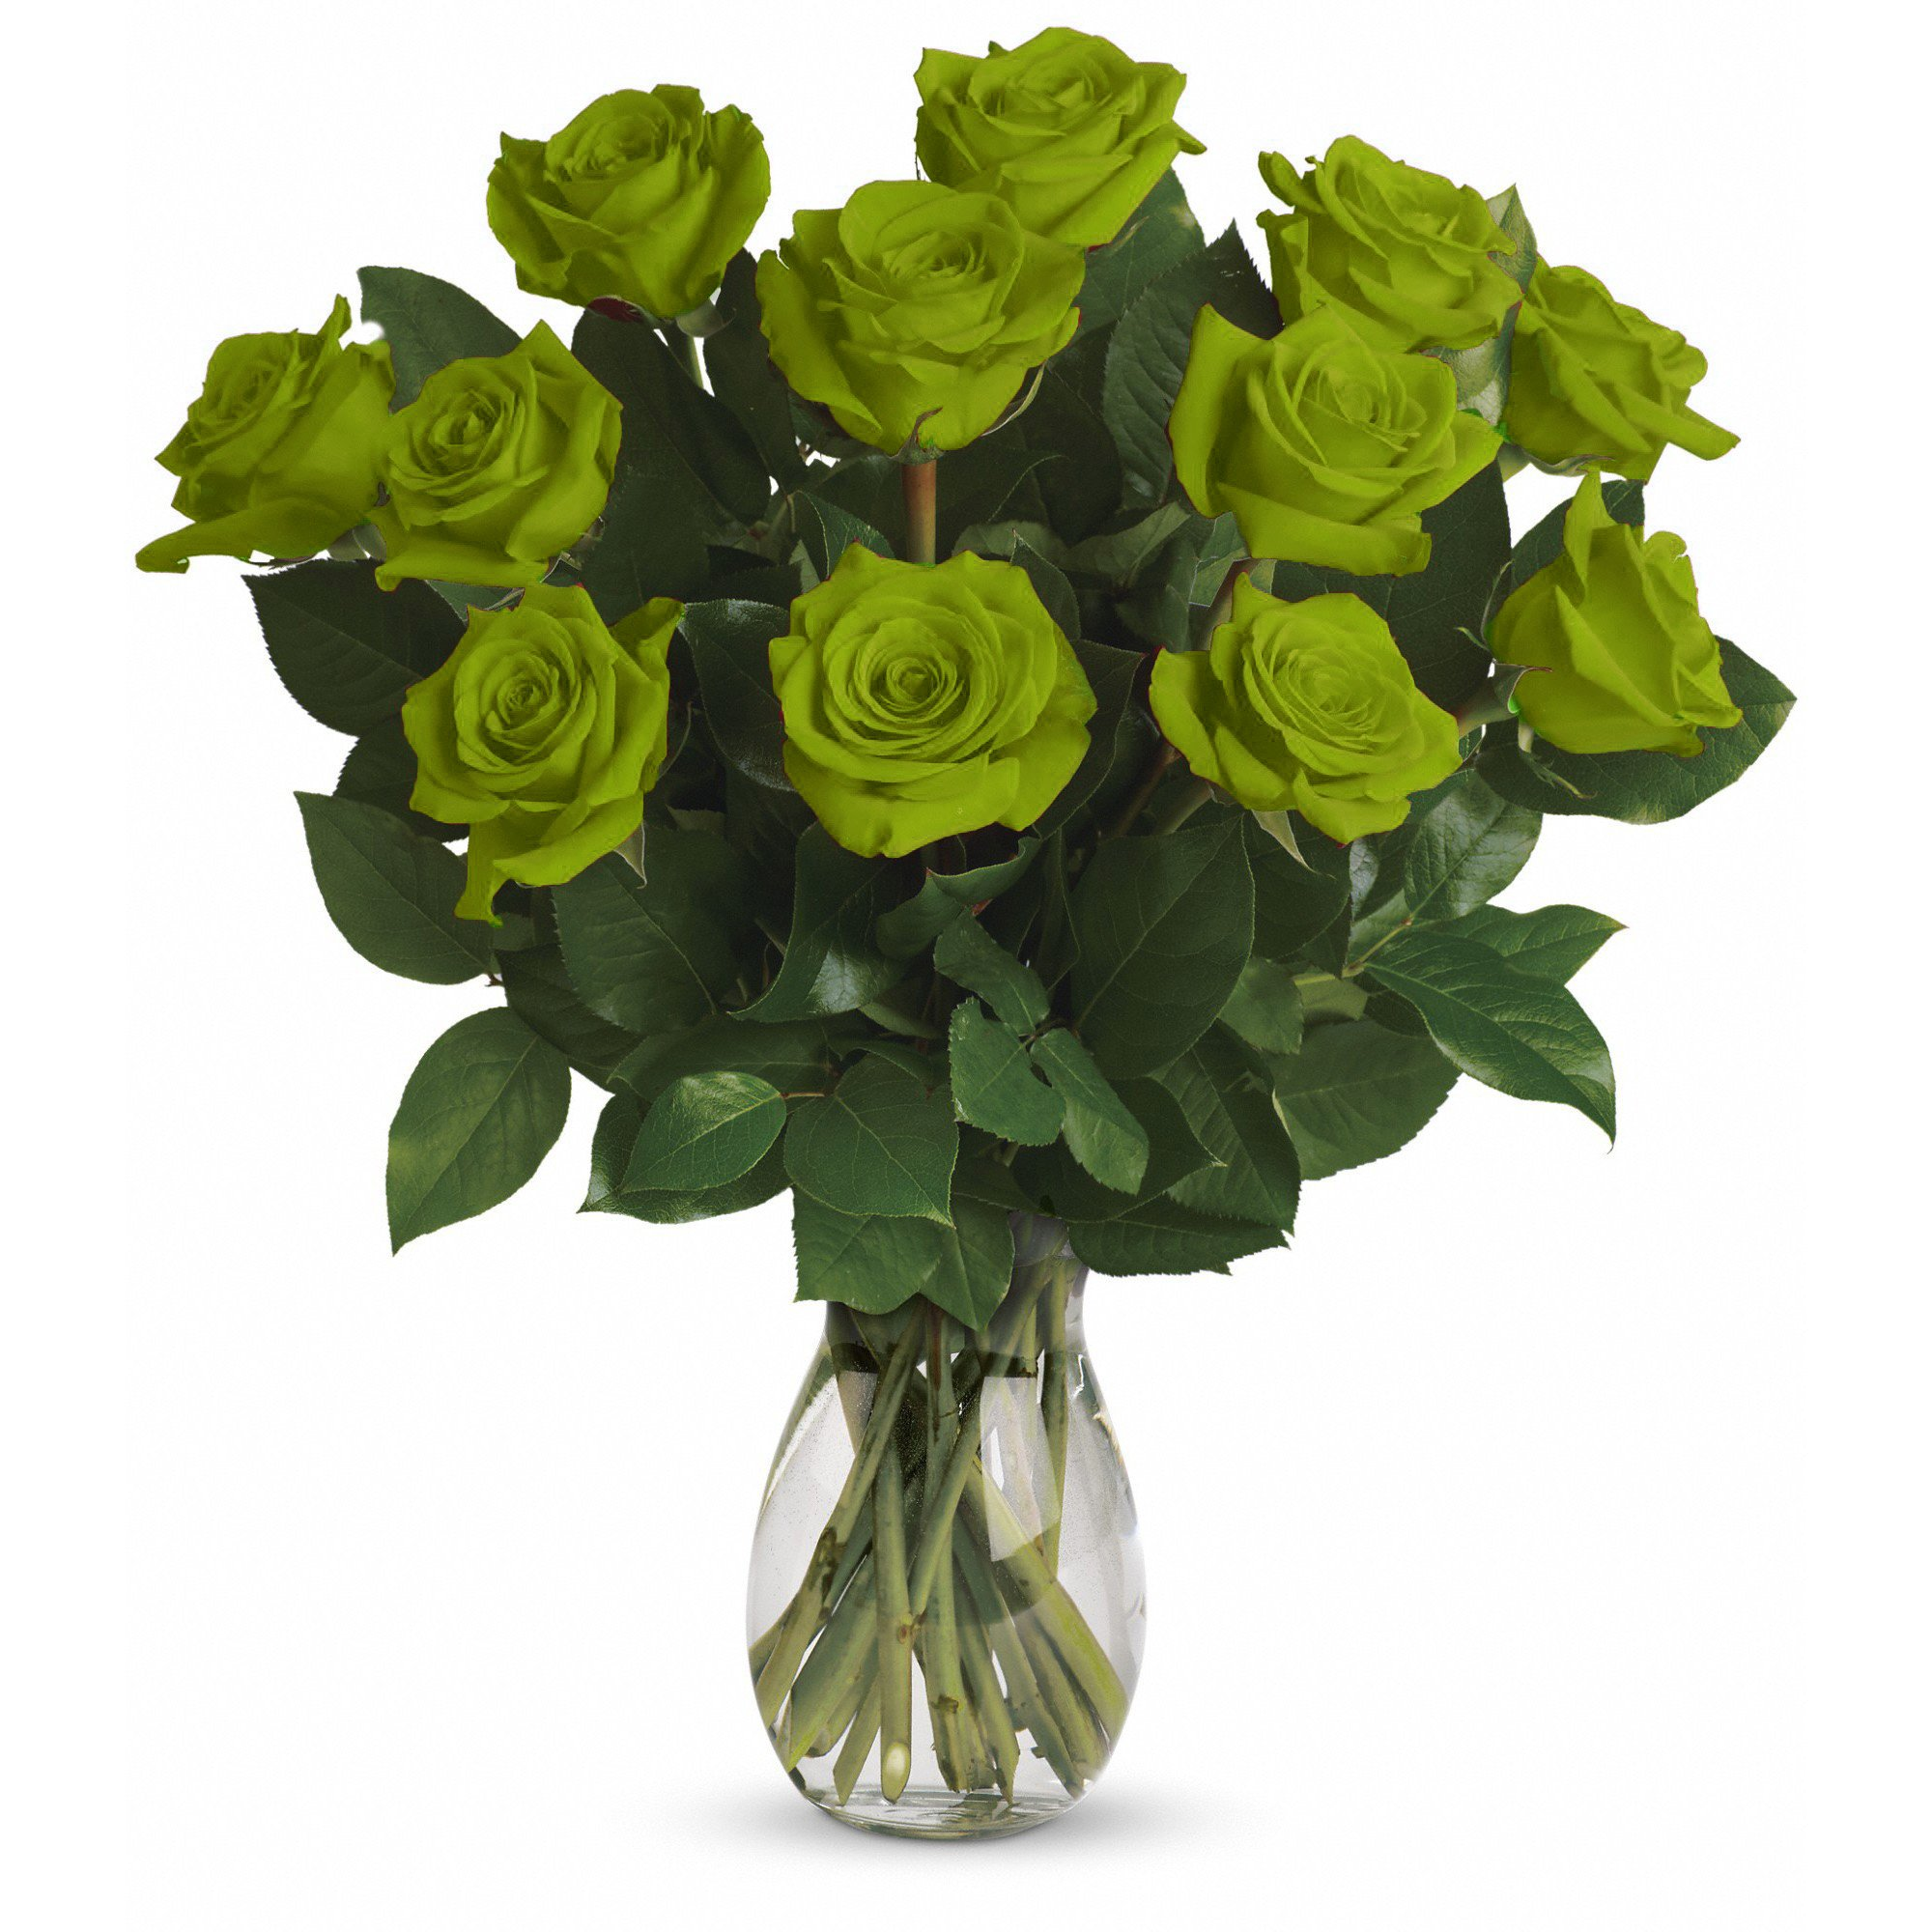 Farm Direct Rose Bouquet of 12 Fresh Cut Roses with Vase (Green)